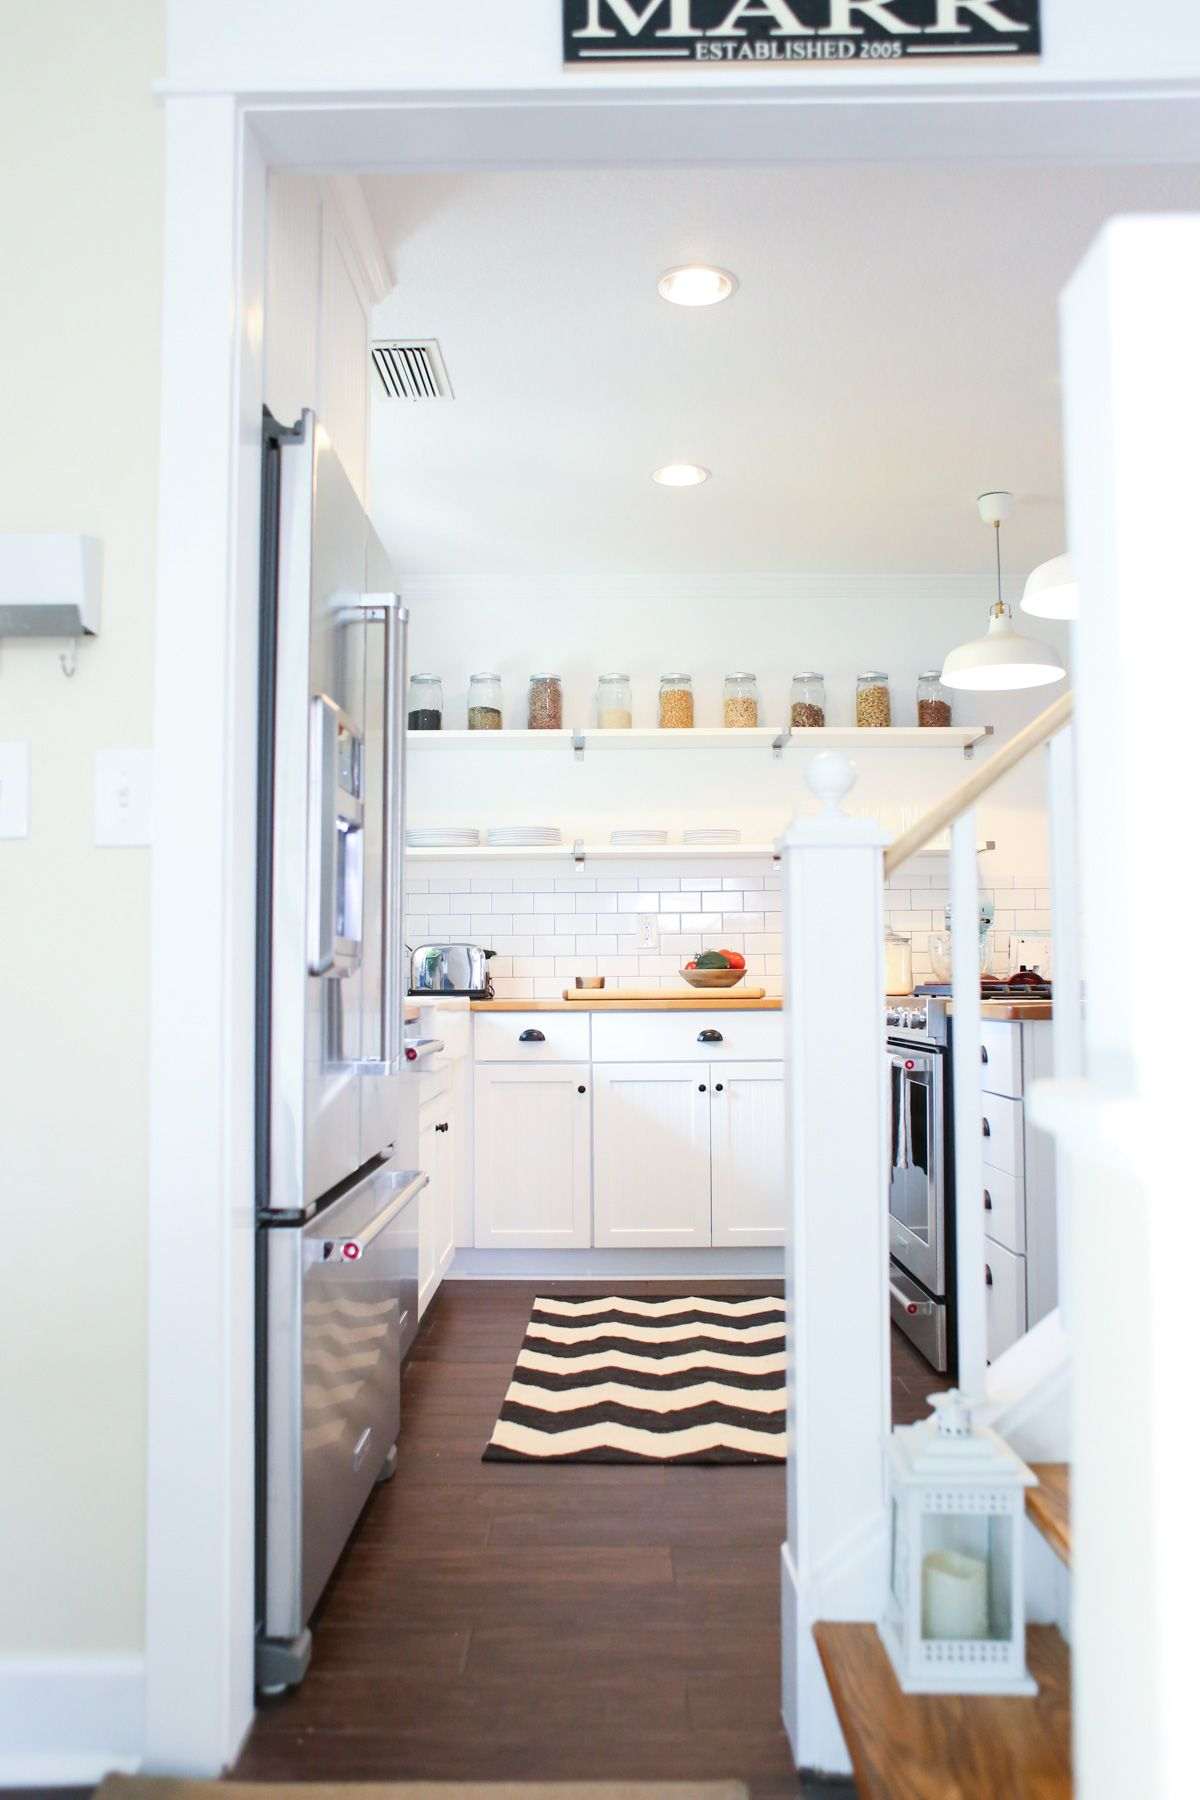 The Live Simply Kitchen Remodel: Final Reveal | Pantry room ...